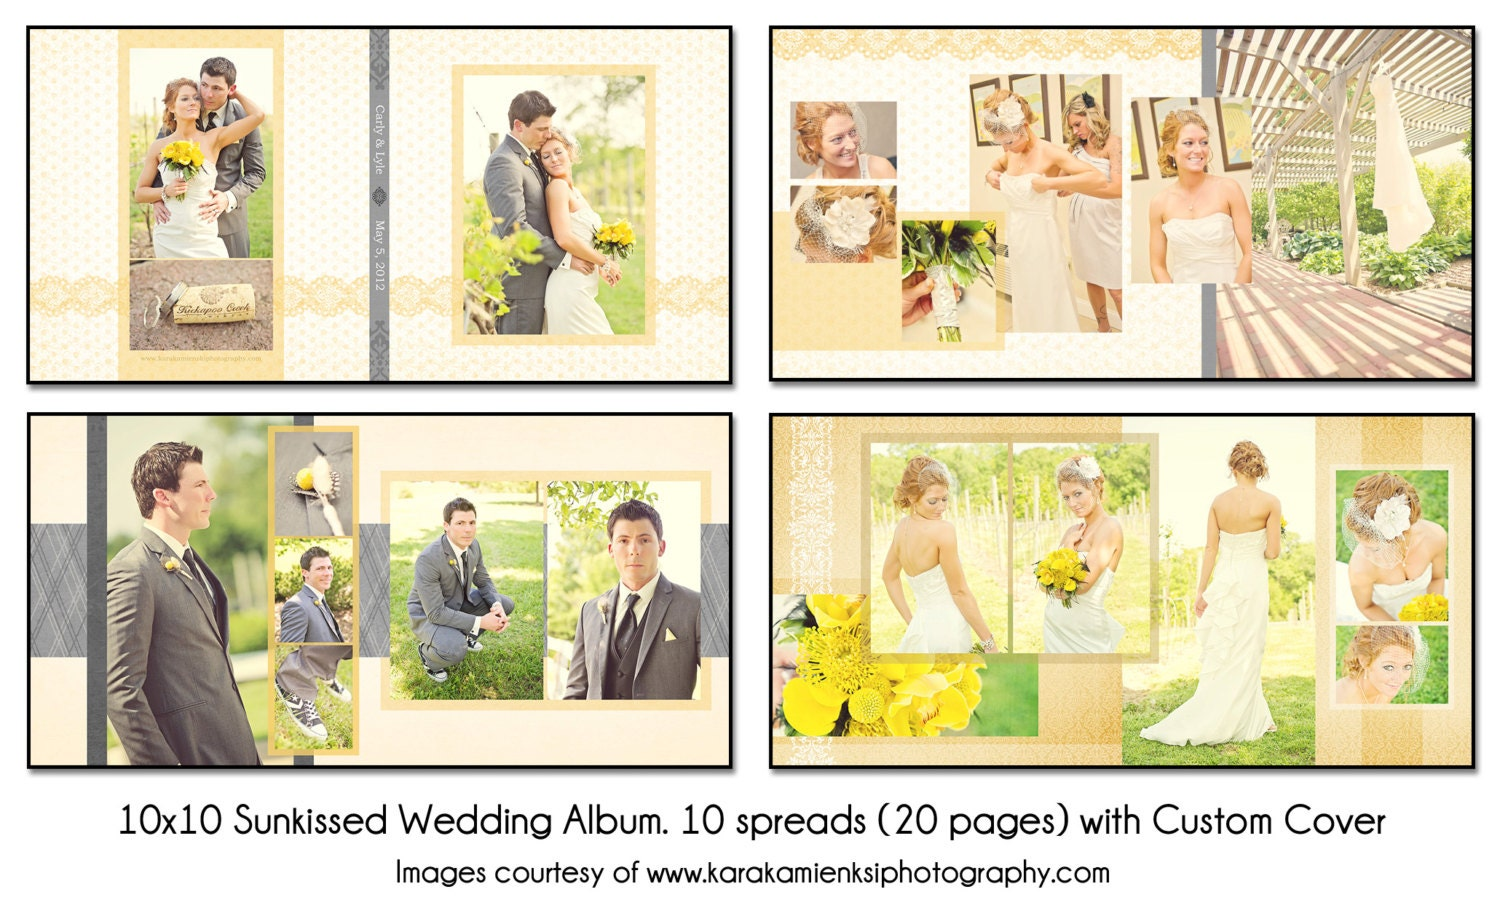 Photoshop Templates: PSD Wedding Album Template SUNKISSED 10x10 10spread 20